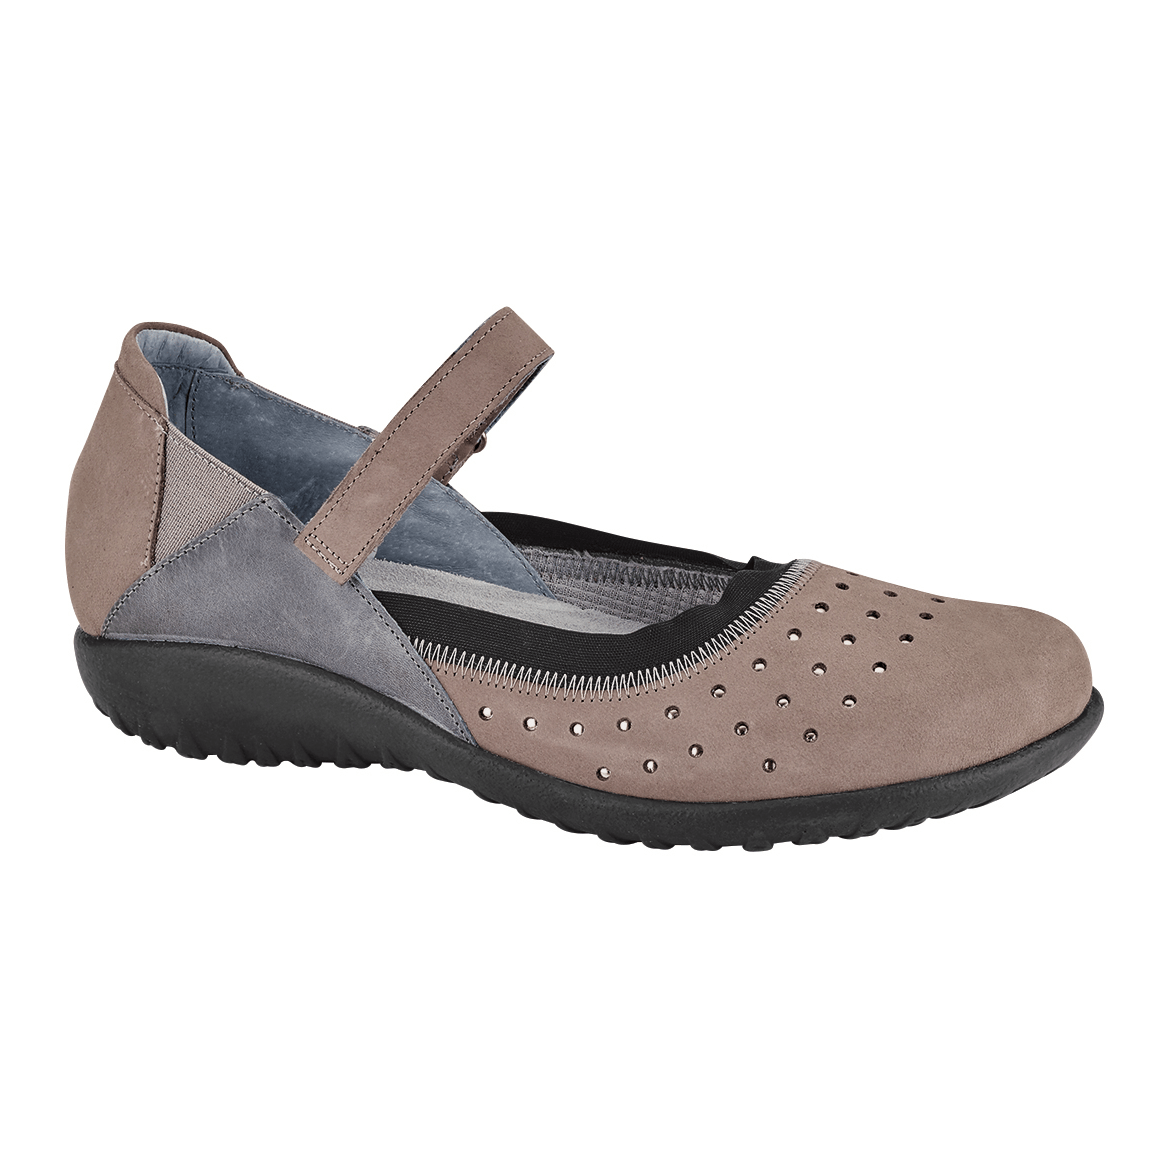 Naot Matua | Women's Casual Metallic Accented Mary Jane Flat | Simons